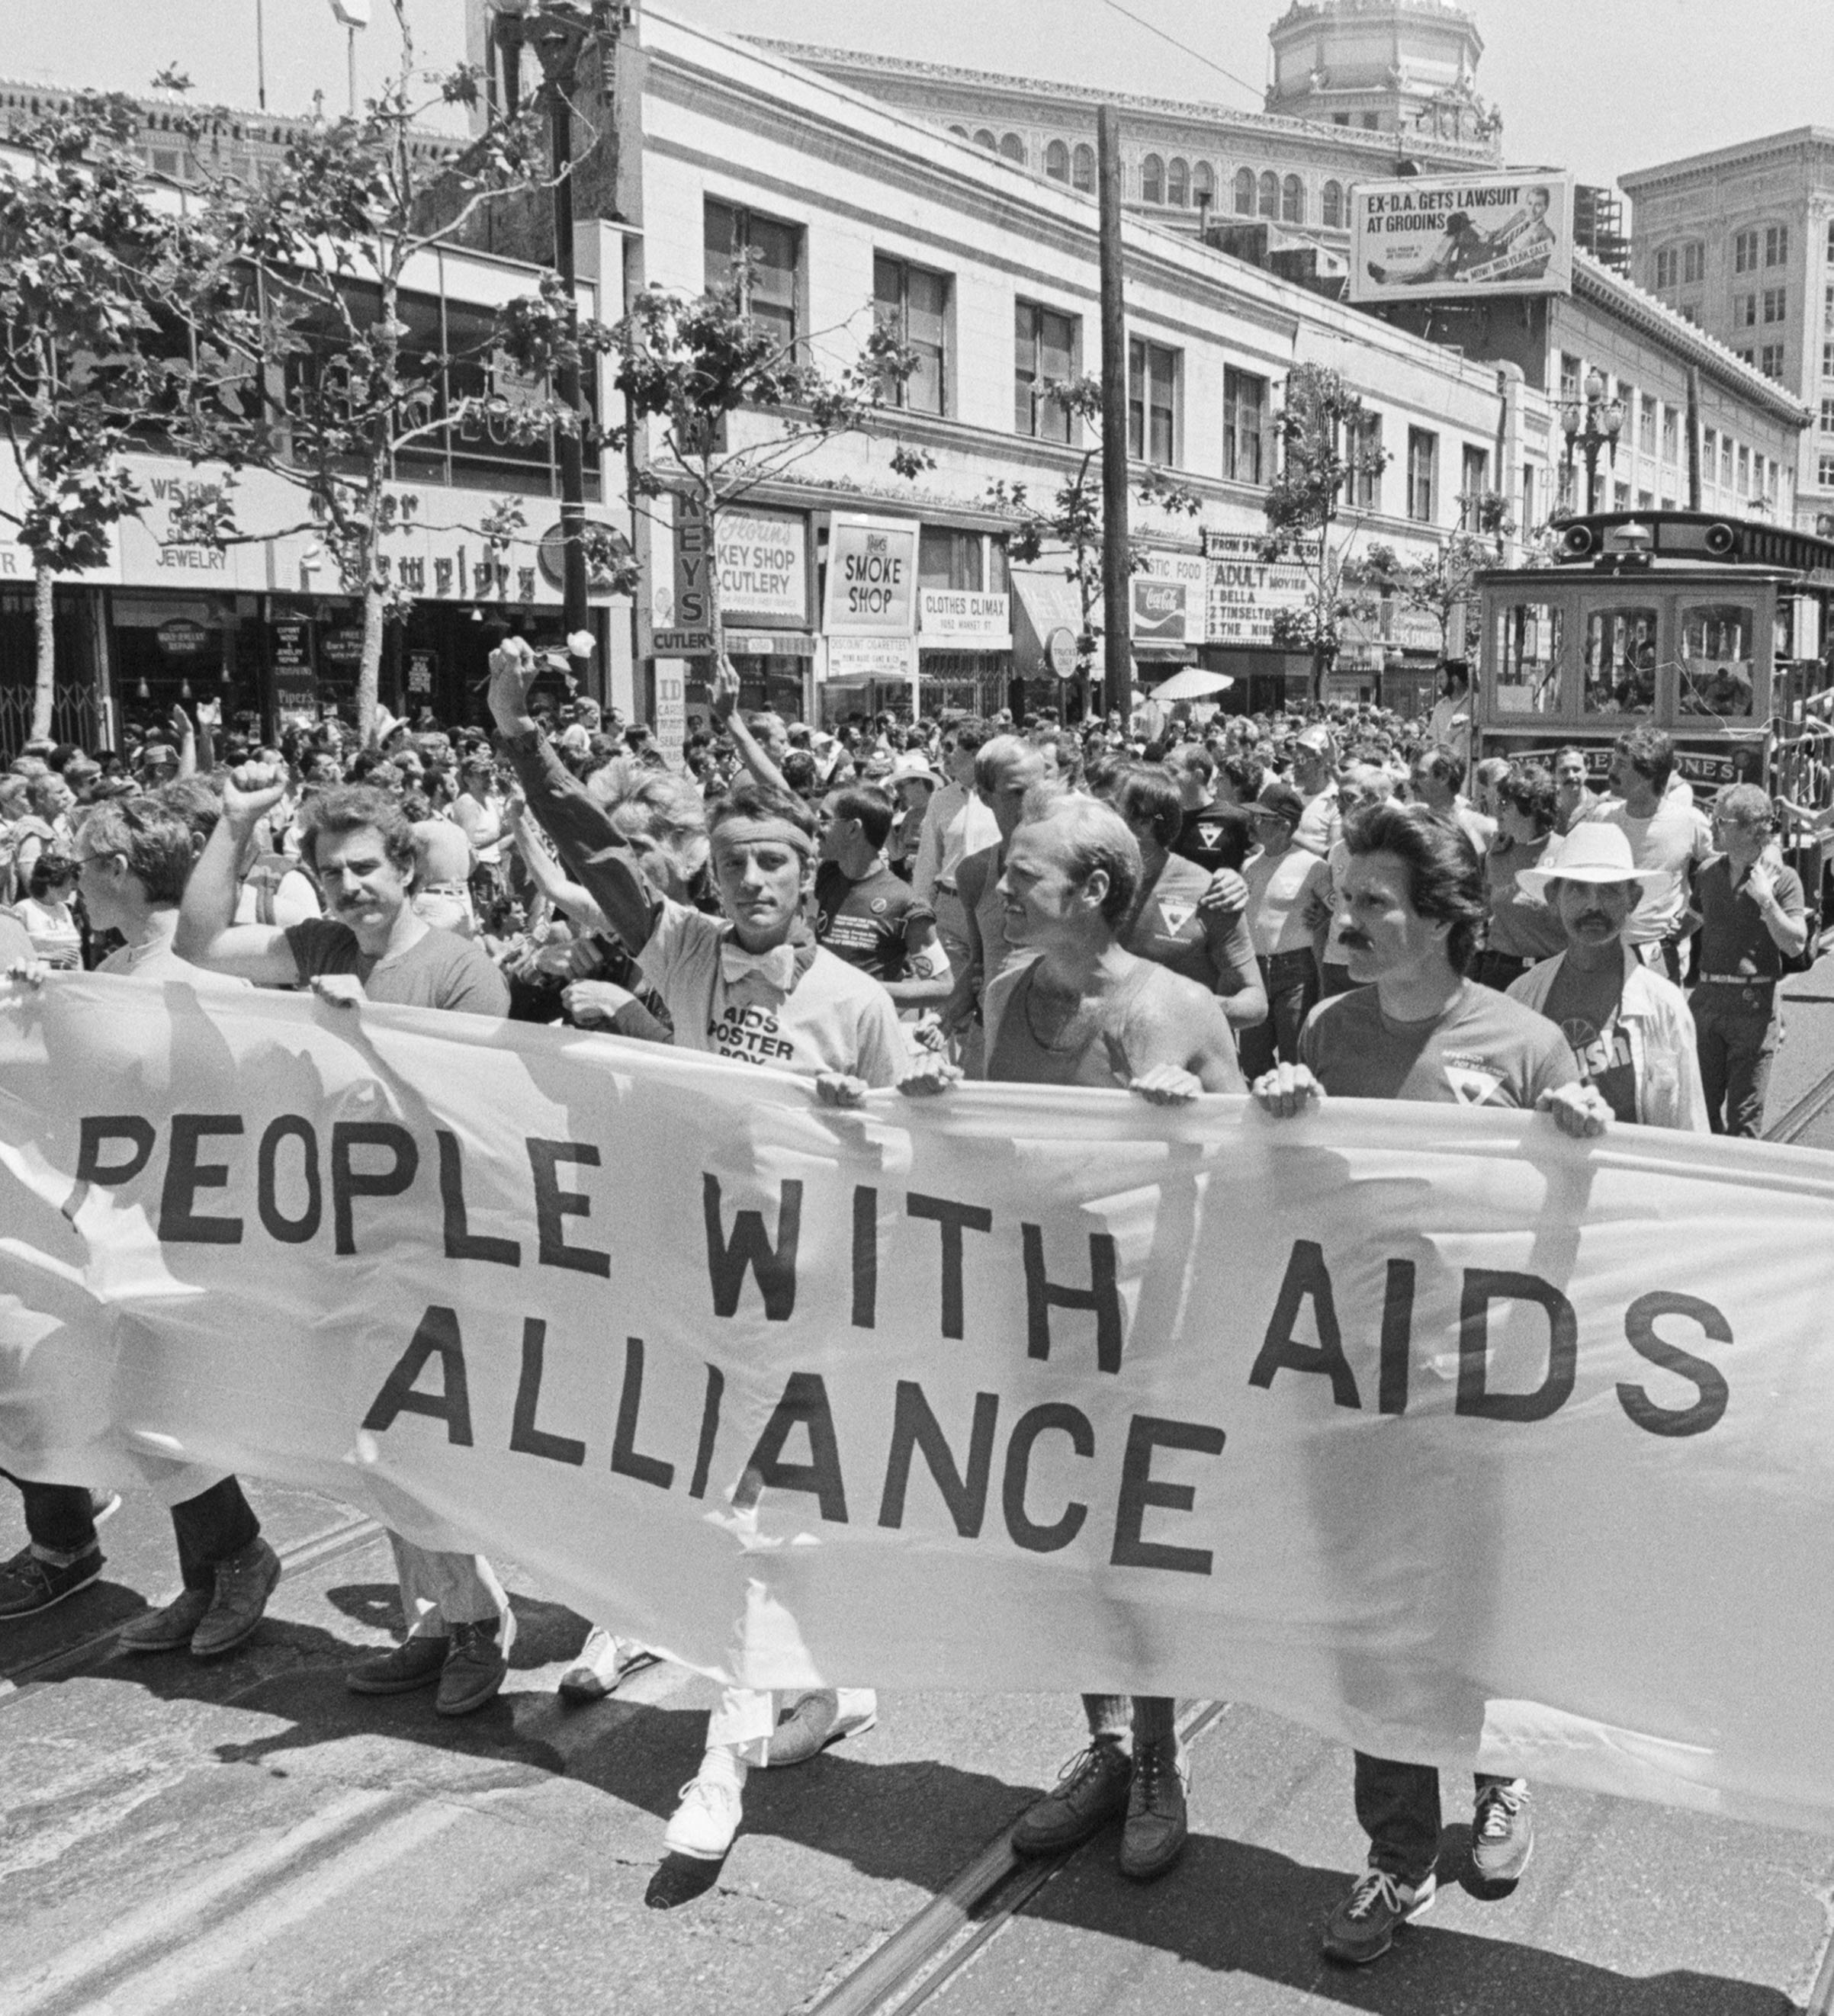 Members of the 'People With AIDS' coalition march in the San Francisco pride parade on June 26, 1983.